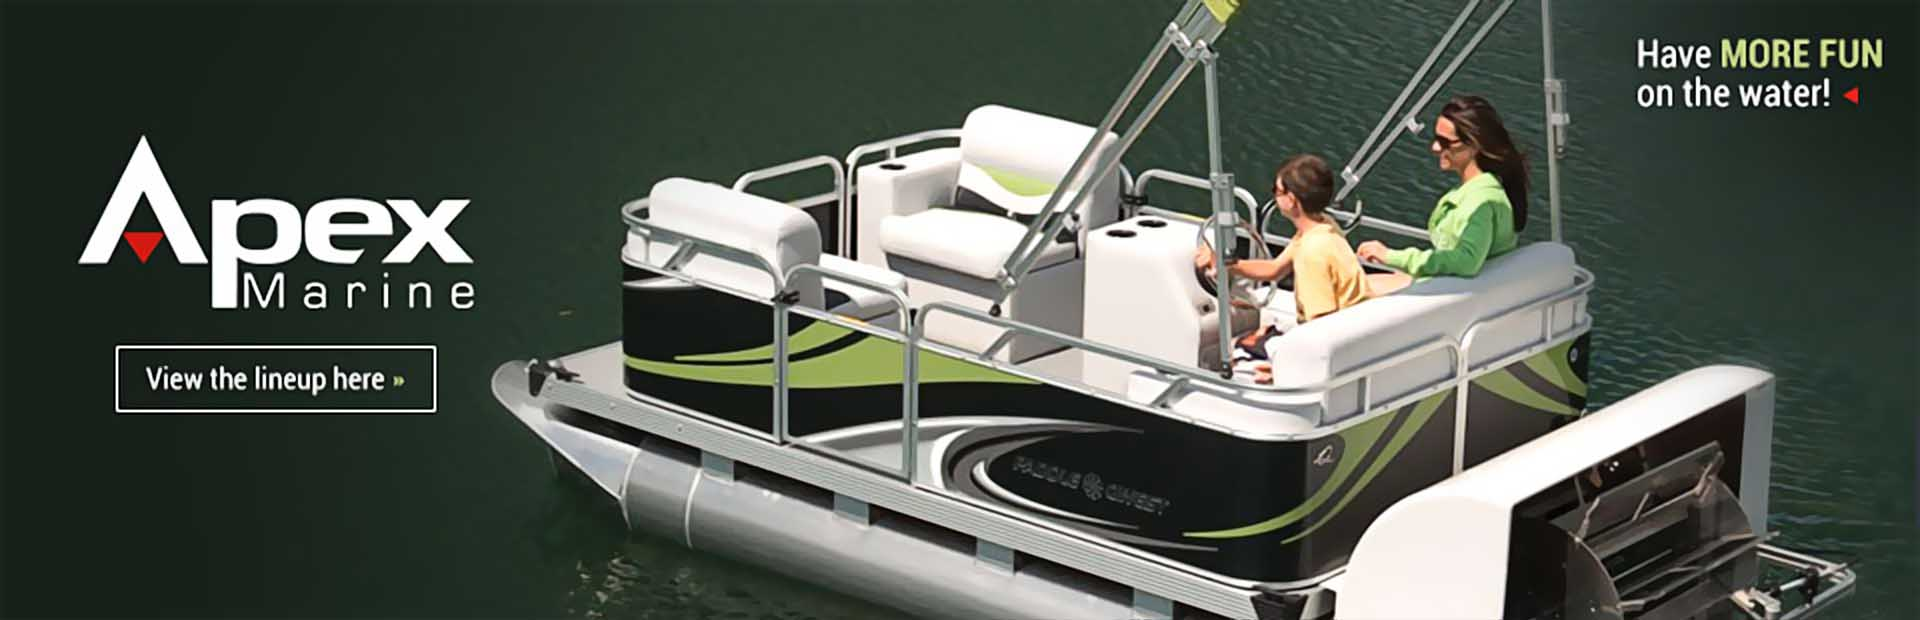 Apex Marine: Click here to view the models.